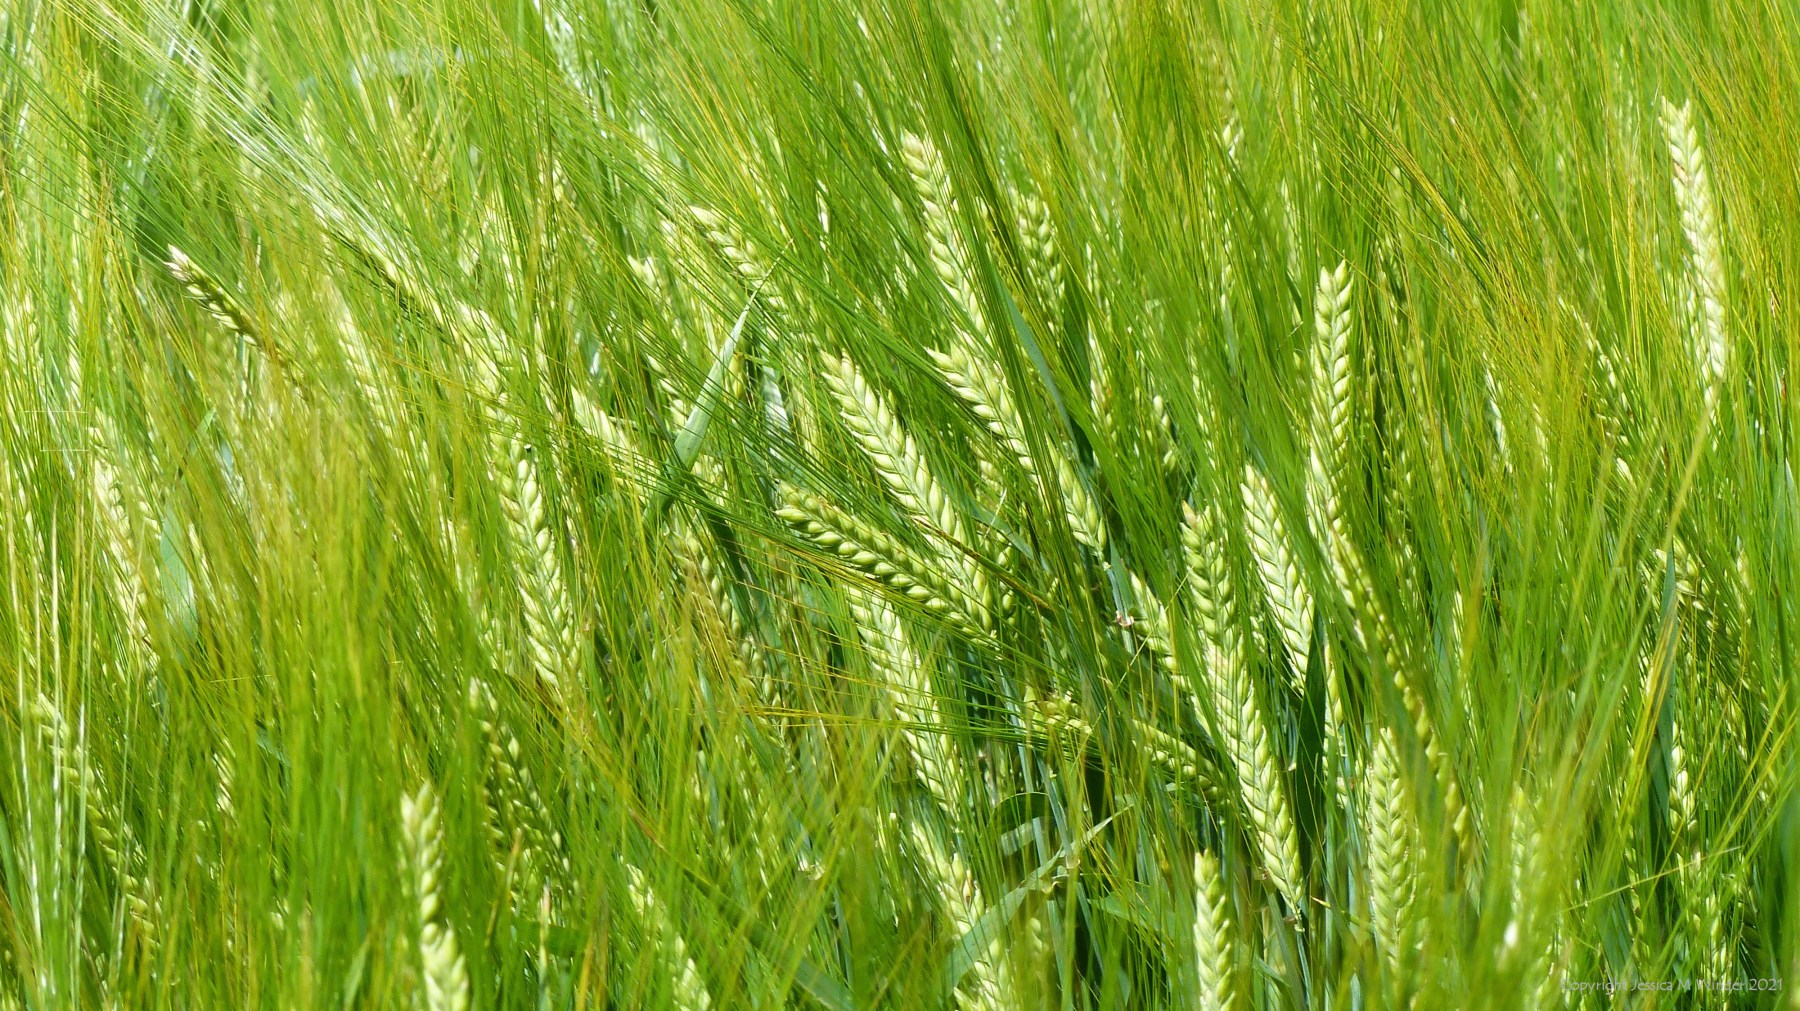 Green barley seed-heads and whiskers